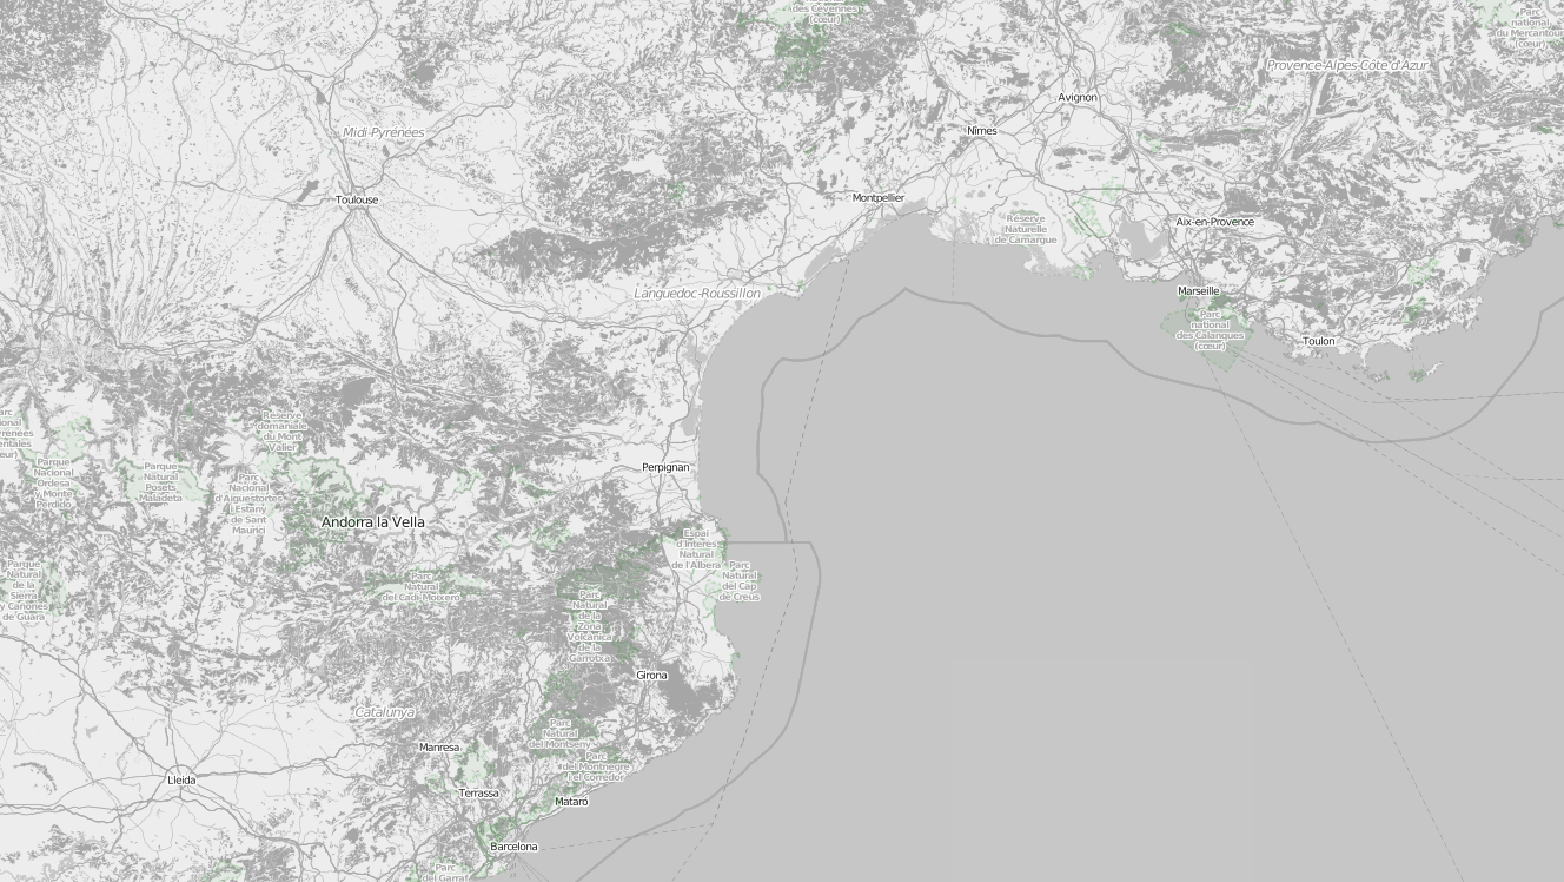 Awesome basemap layer for your QGIS project